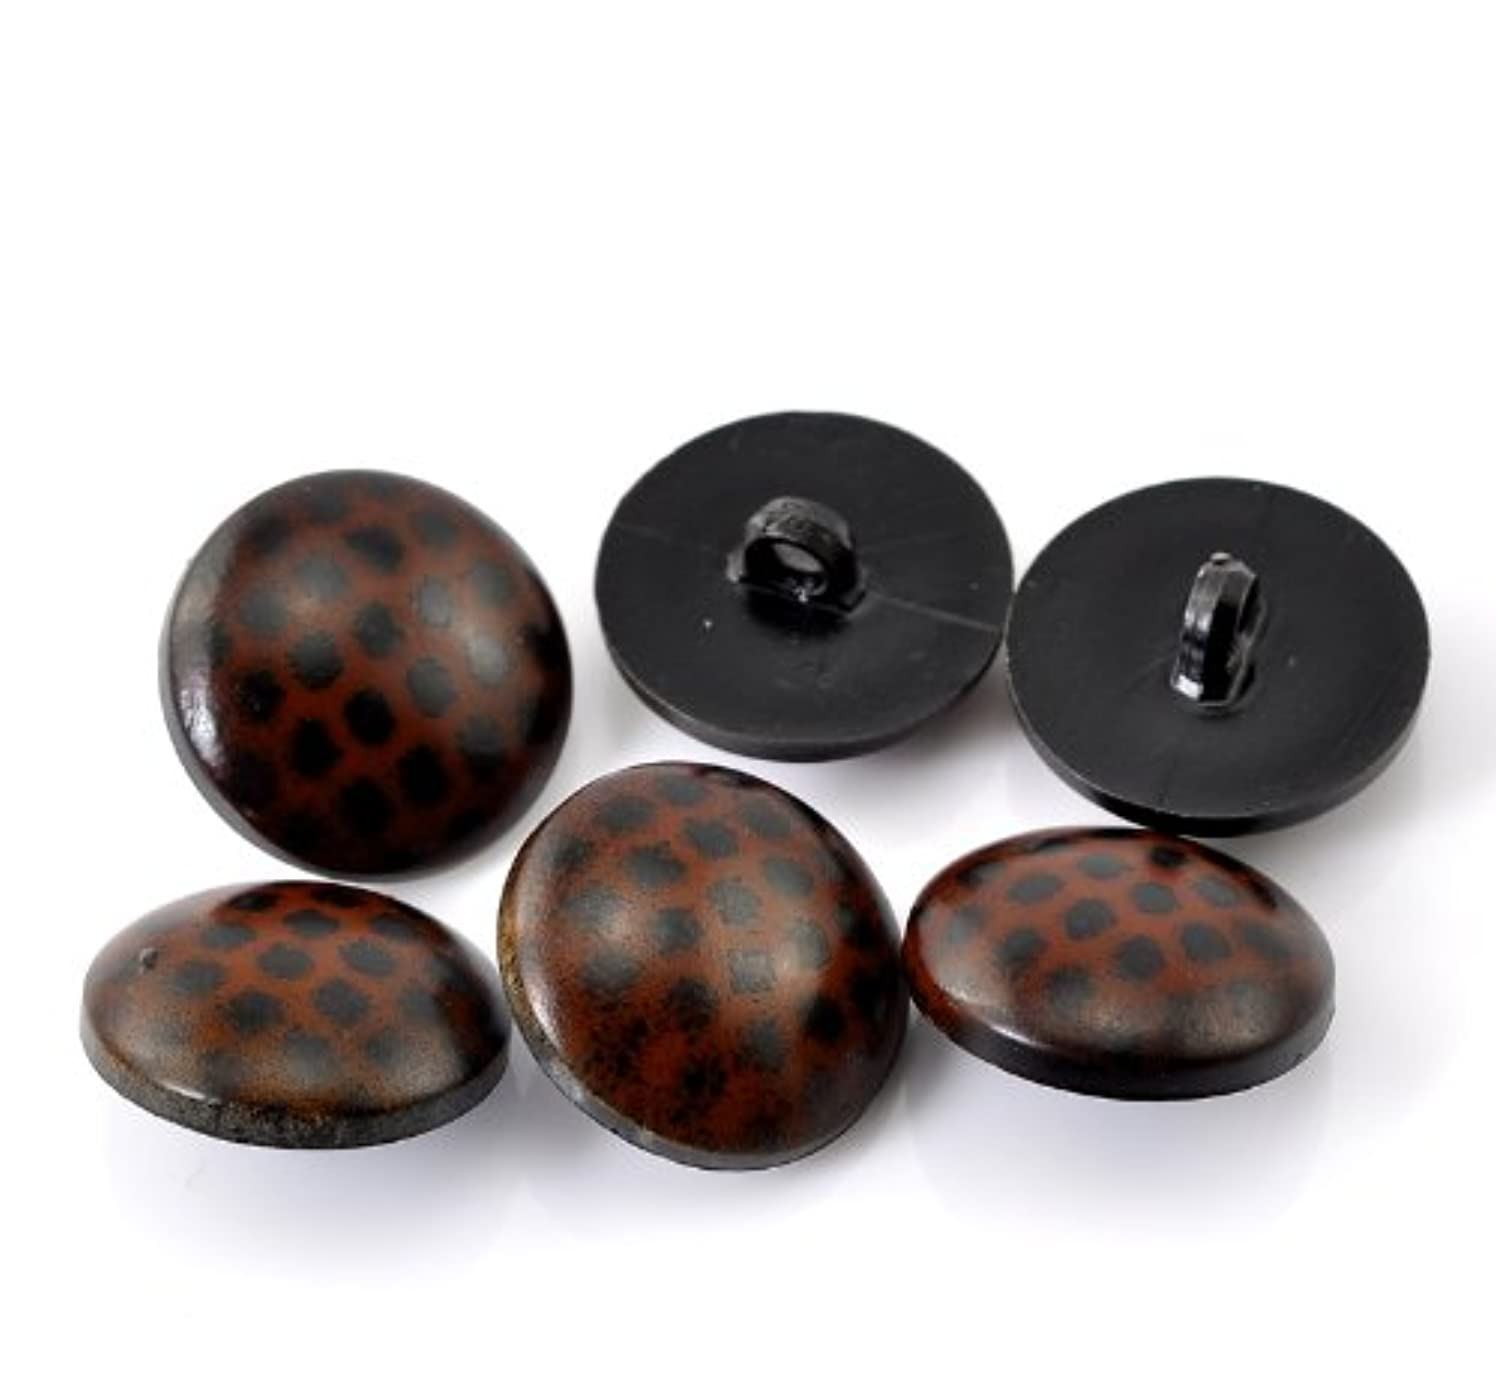 PEPPERLONELY Brand 50PC Brown Dots Resin Scrapbooking Sewing Buttons with Shank 22mm (7/8 Inch)